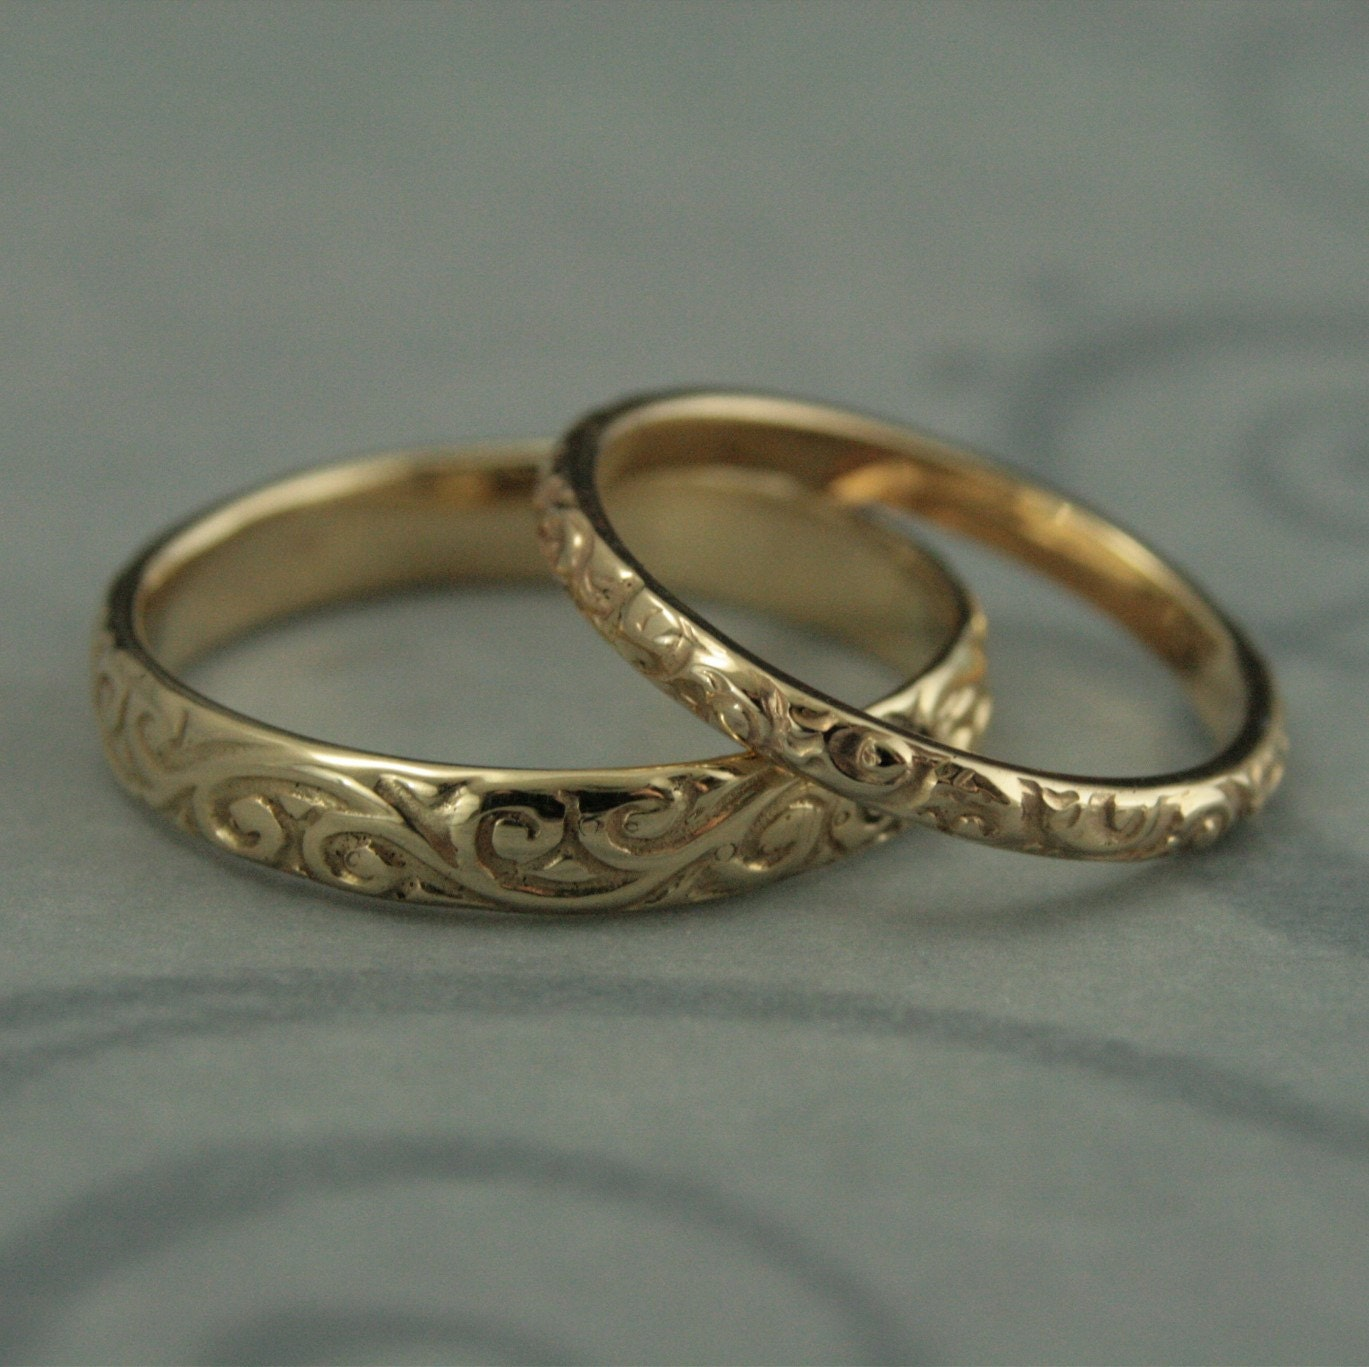 etsy gold rings shaped wedding rose pretty vintage engagement simple unique jewelry ring antique